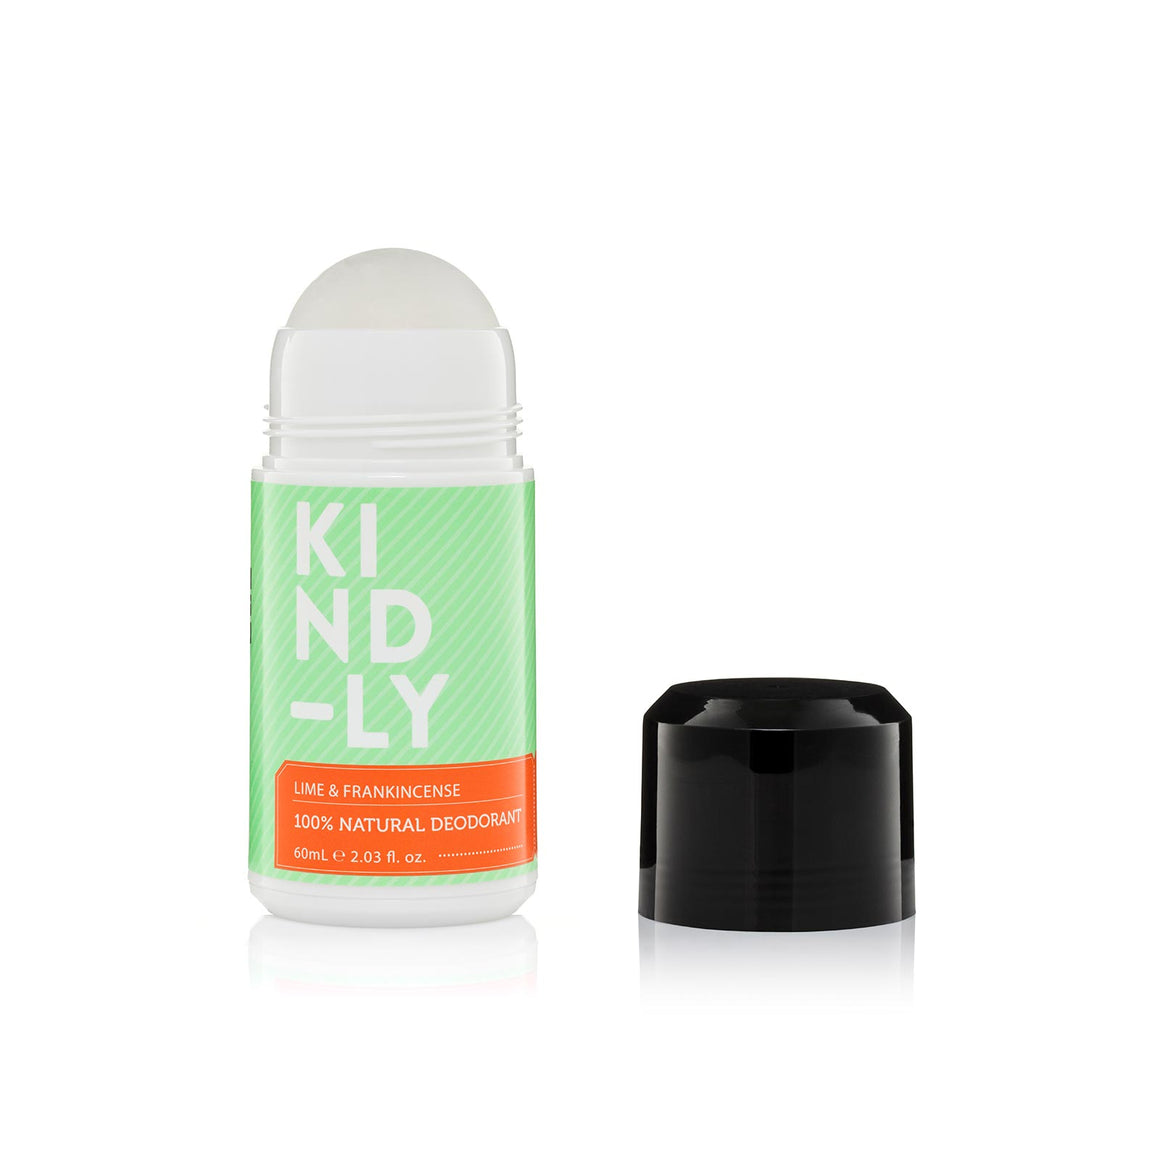 Kind-ly Lime & Frankincense 100% Deodorant - 60ml